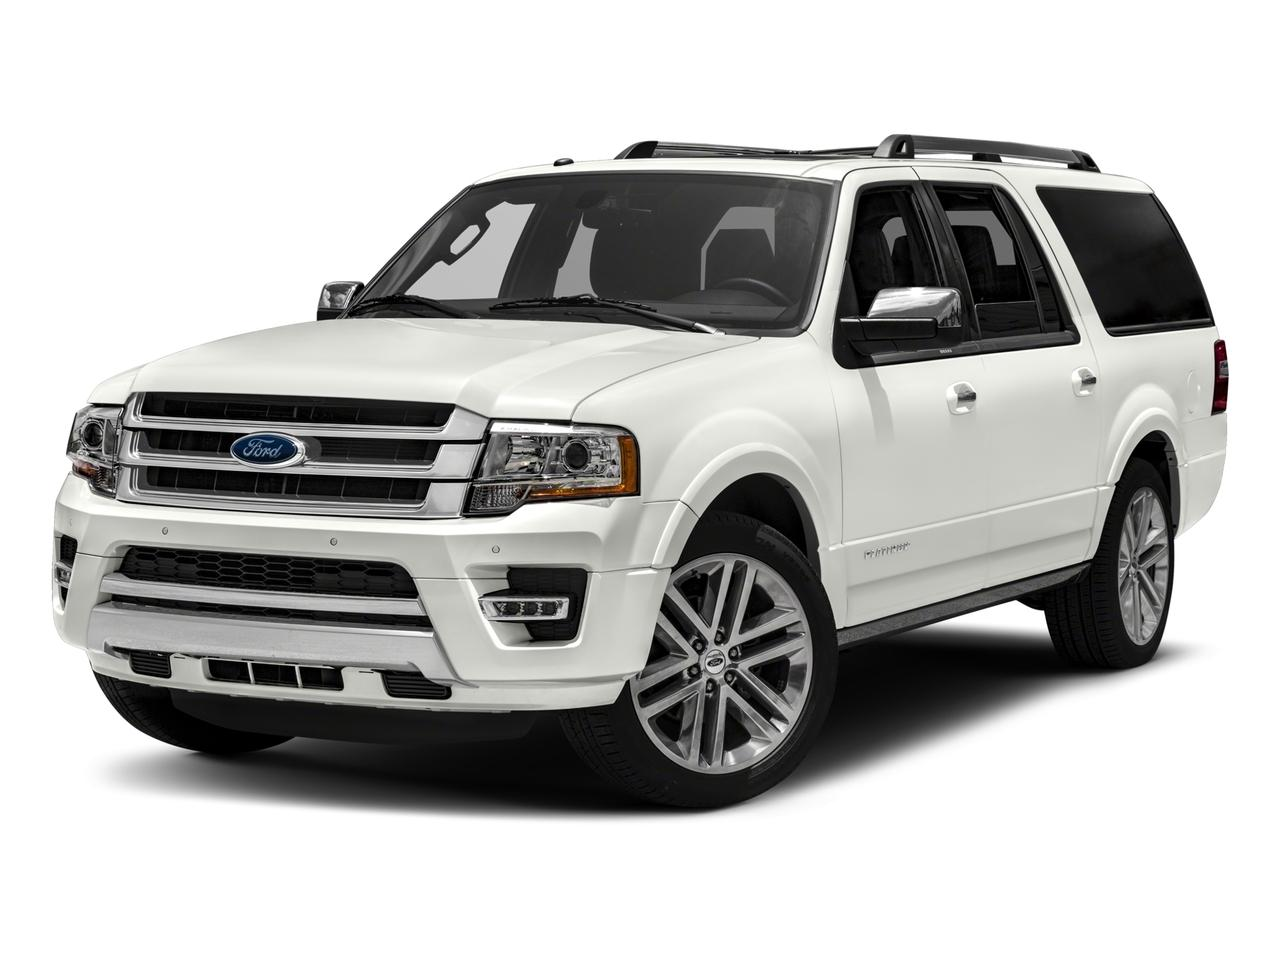 2017 Ford Expedition EL Vehicle Photo in Anchorage, AK 99515